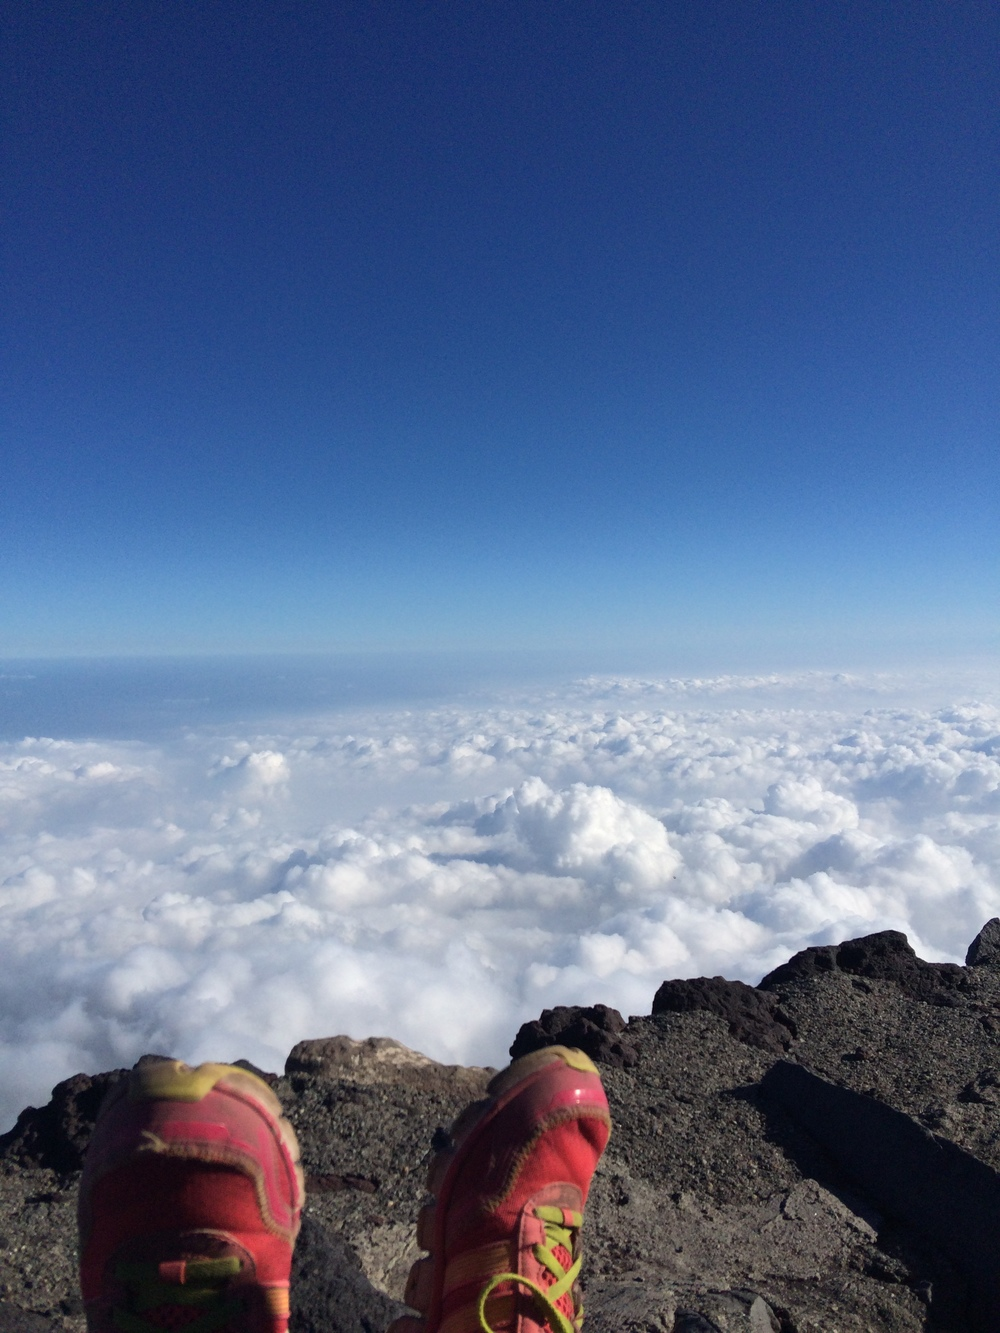 And this happened...Before we knew it we were above the clouds and everything felt and looked unreal.